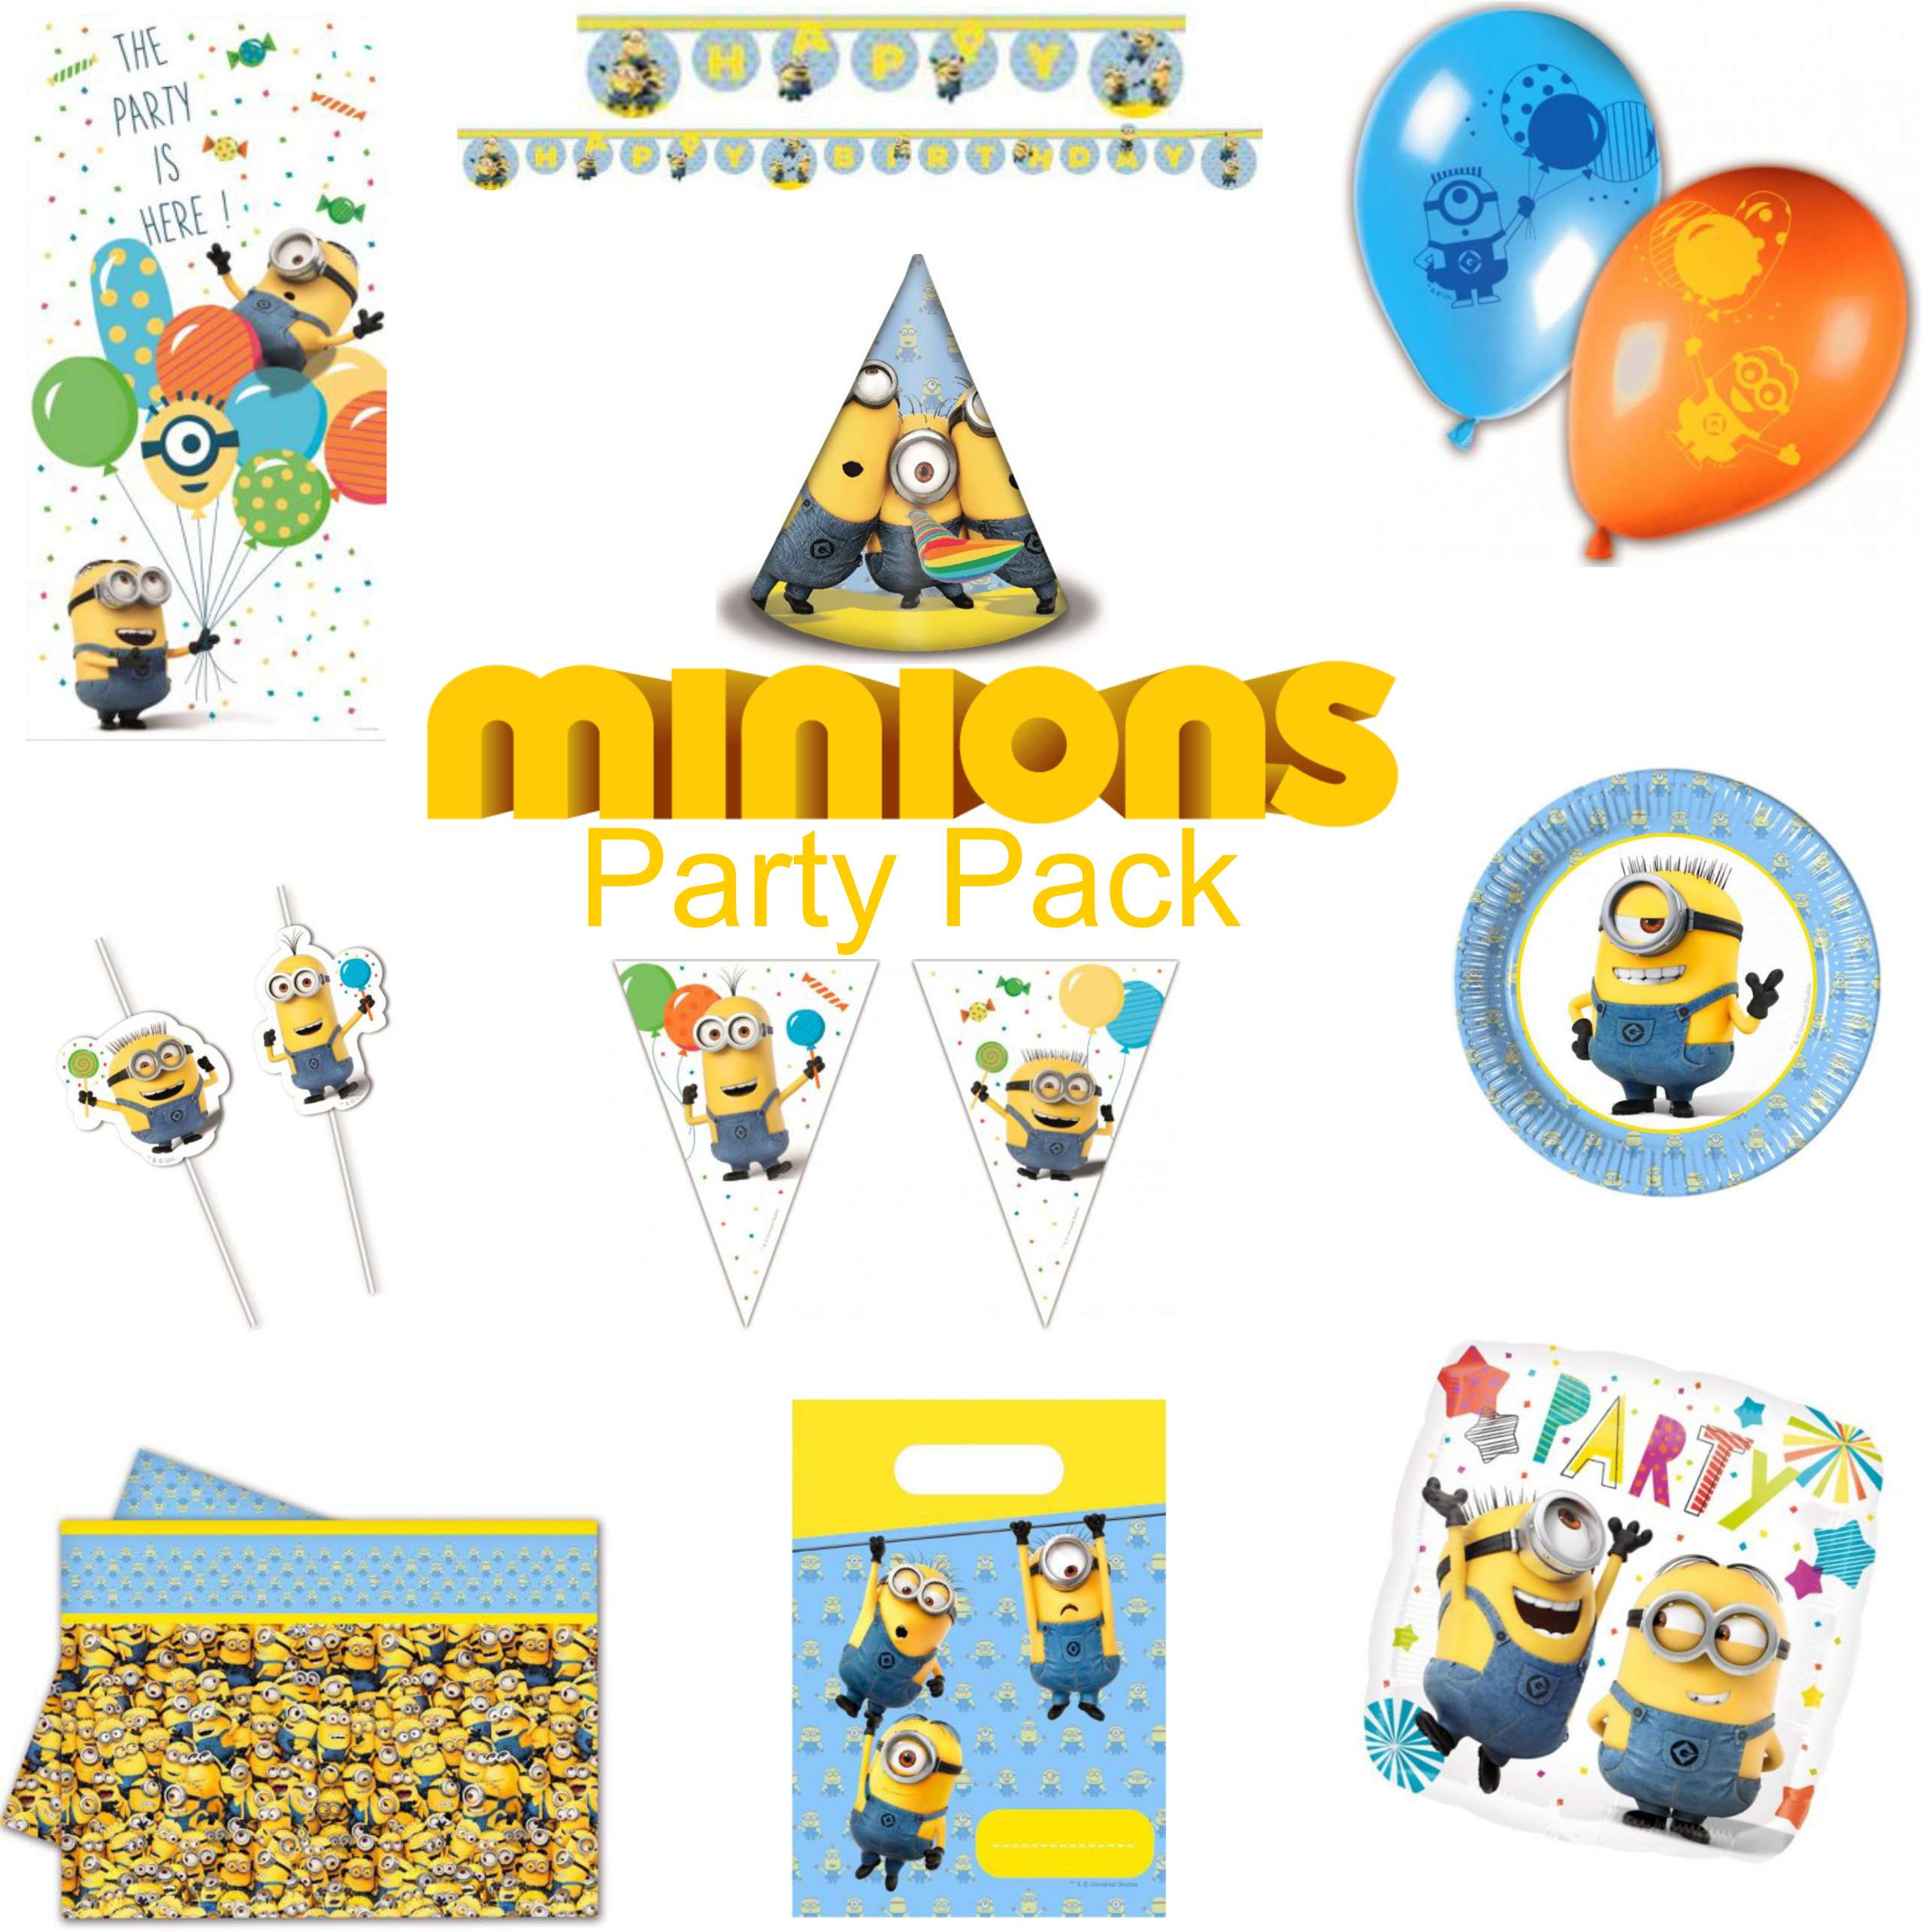 Minions Party Pack